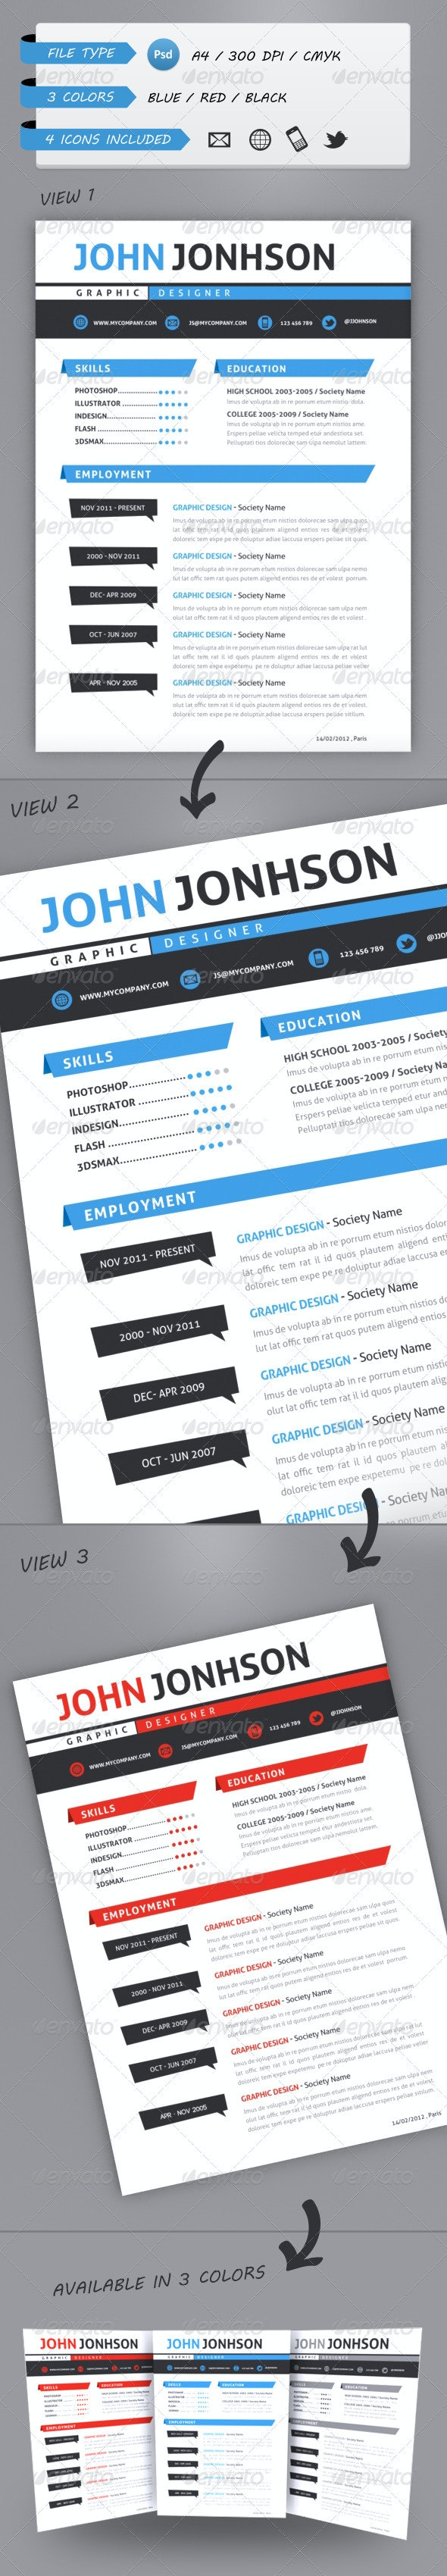 Professional Resume Template A4 - Resumes Stationery